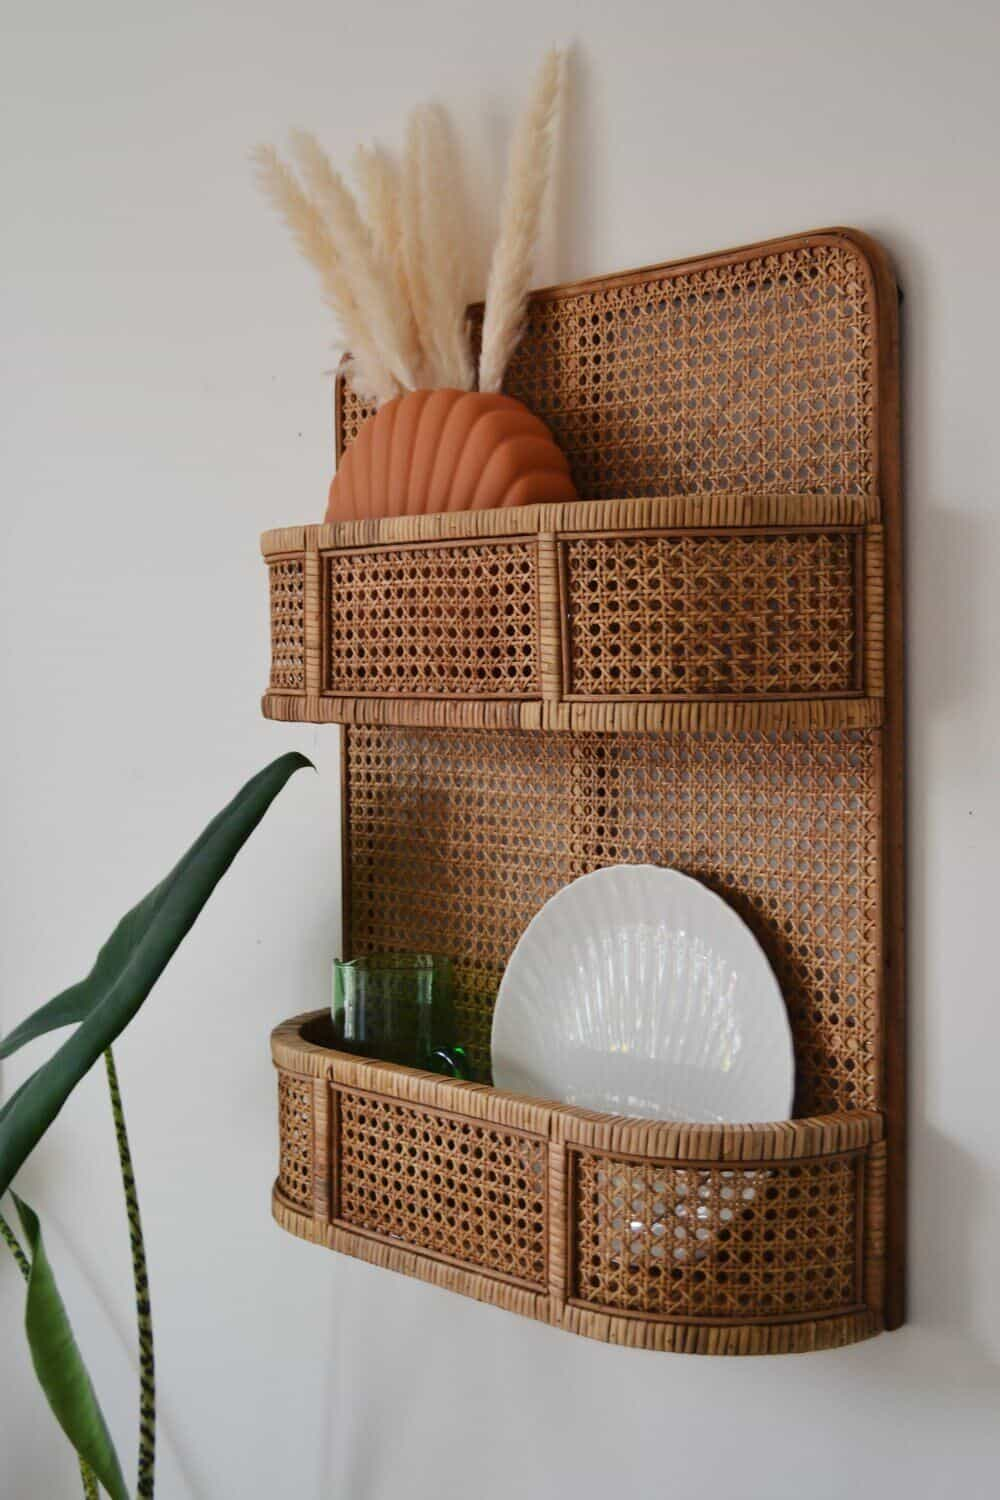 Rattan shelving unit from Spicer & Wood